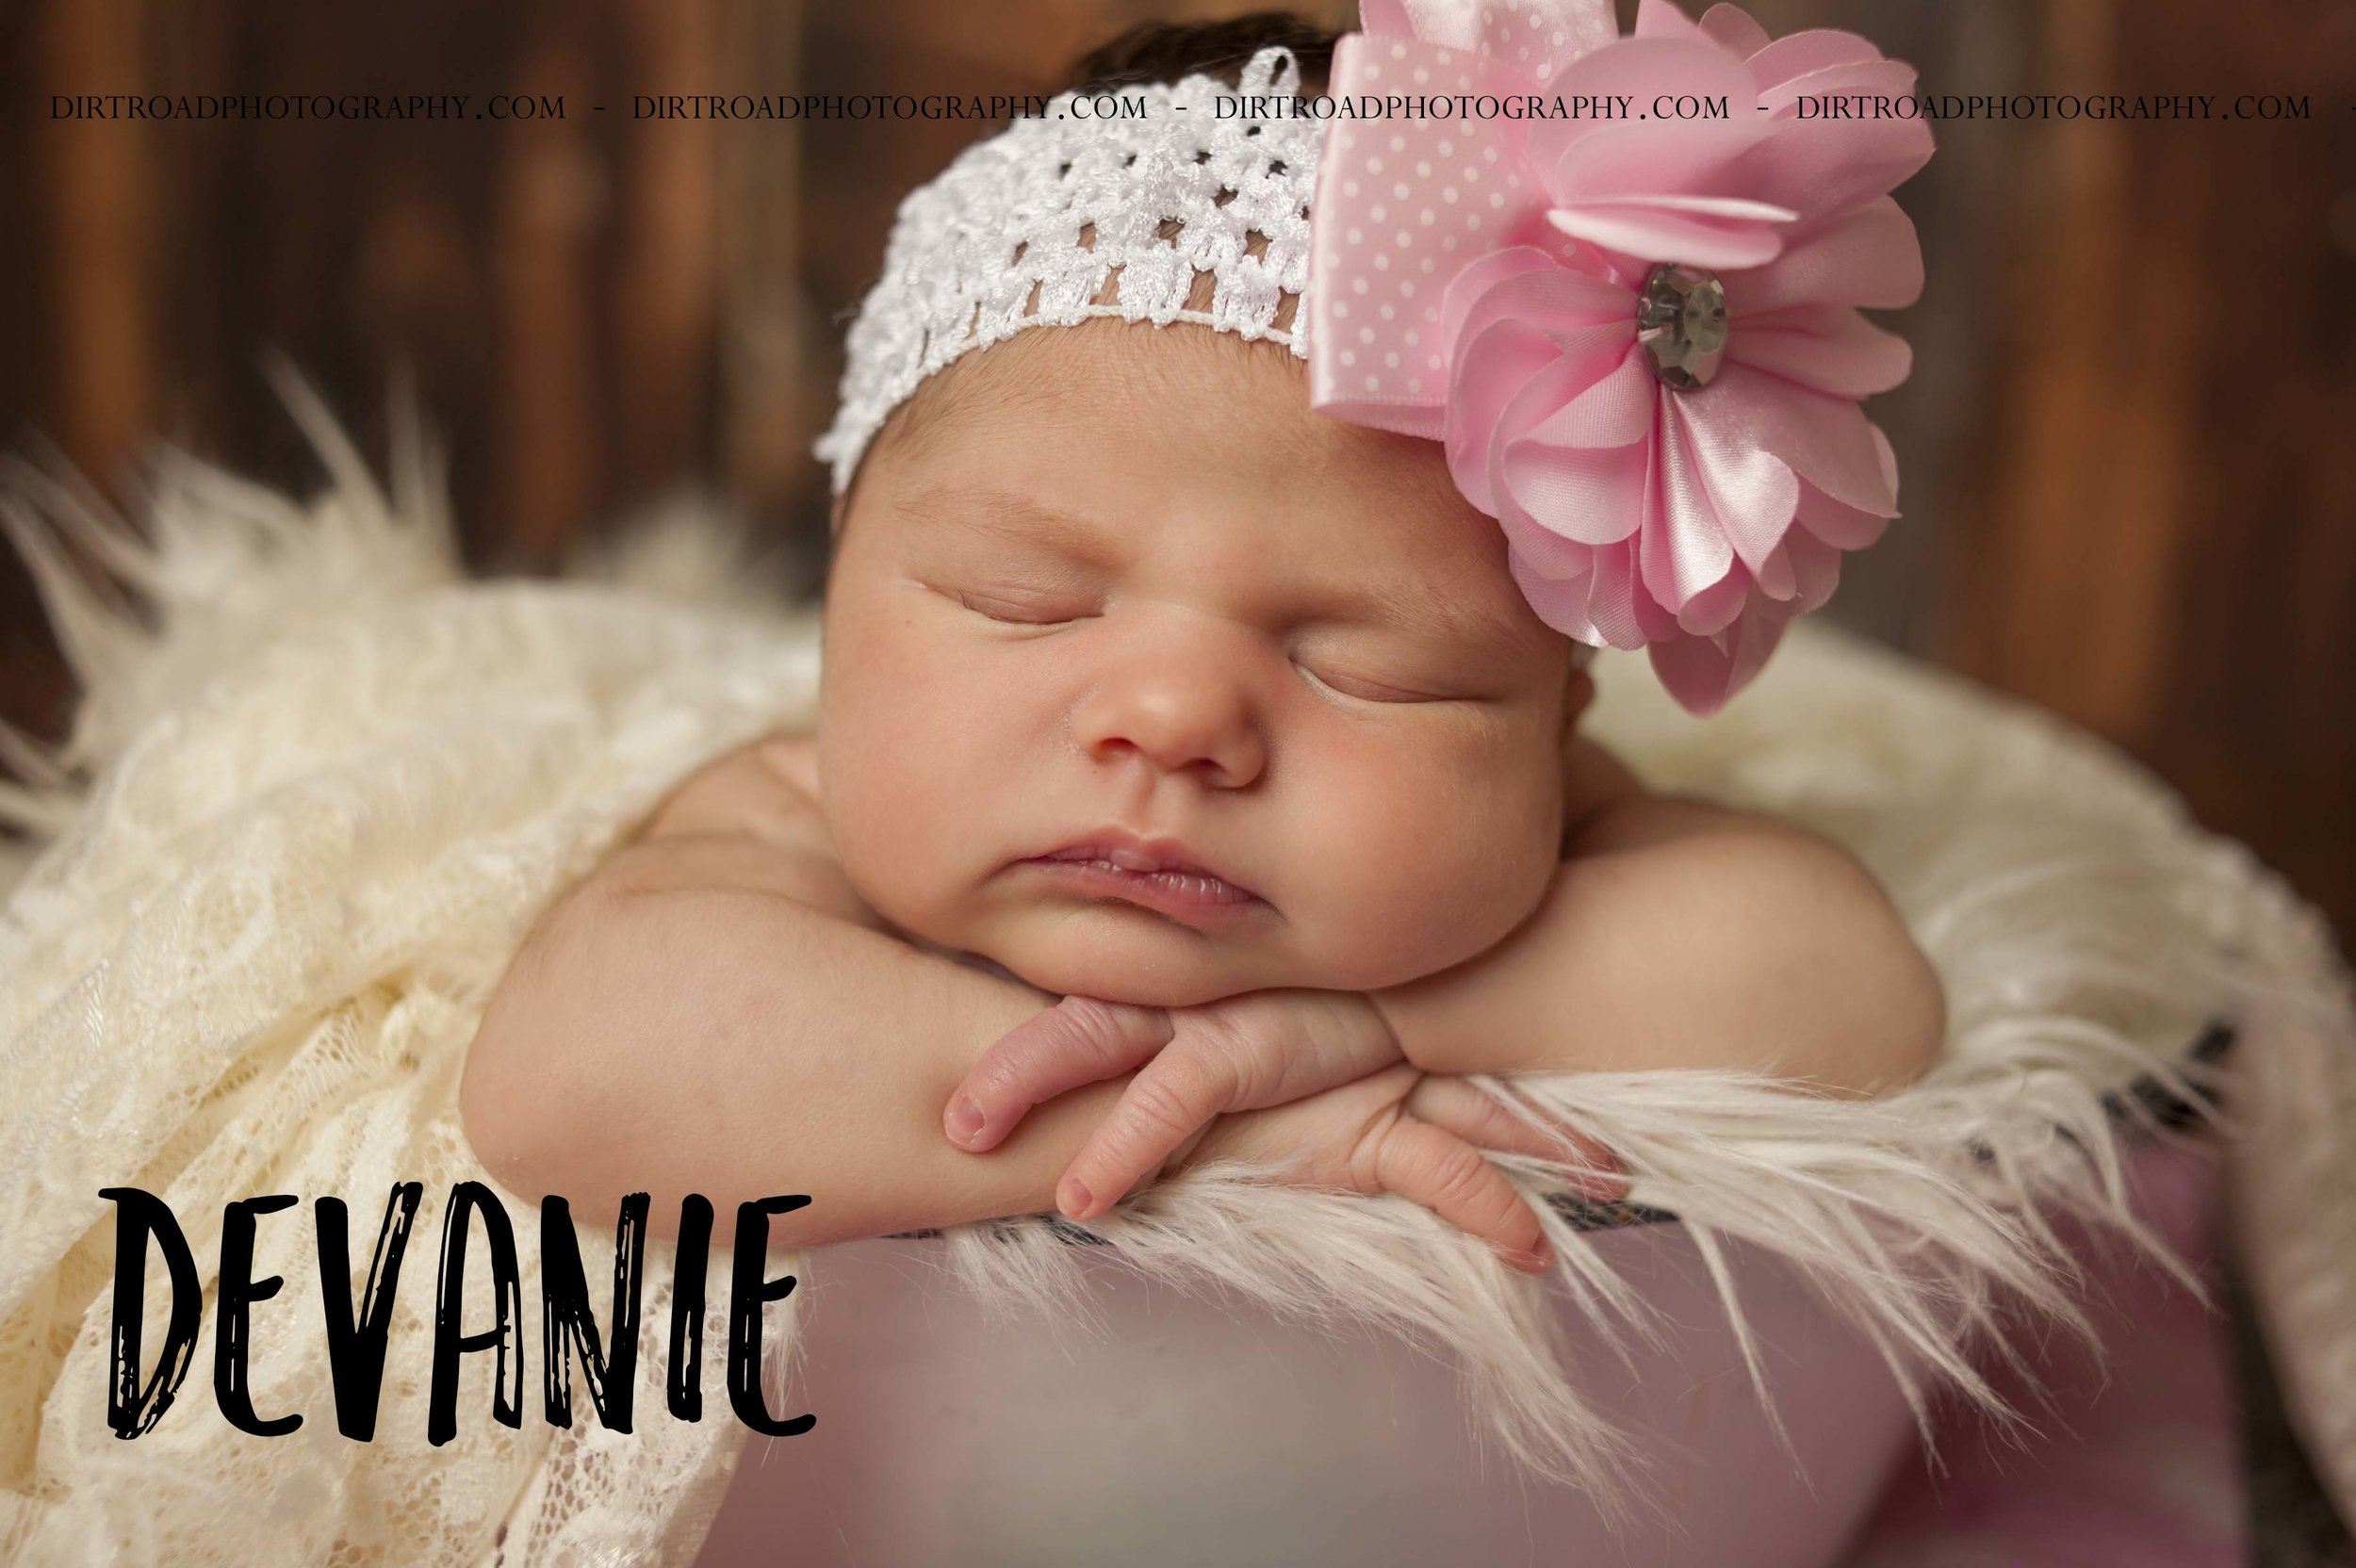 devanie newborn photos of ten day old baby with big pink bow and dark longer brown hair sitting in porcelain bowl with white fluffy layer and lace blanket laying on it photos taken near wilber nebraska at studio with dirt road photography by kelsey nerud the photographer